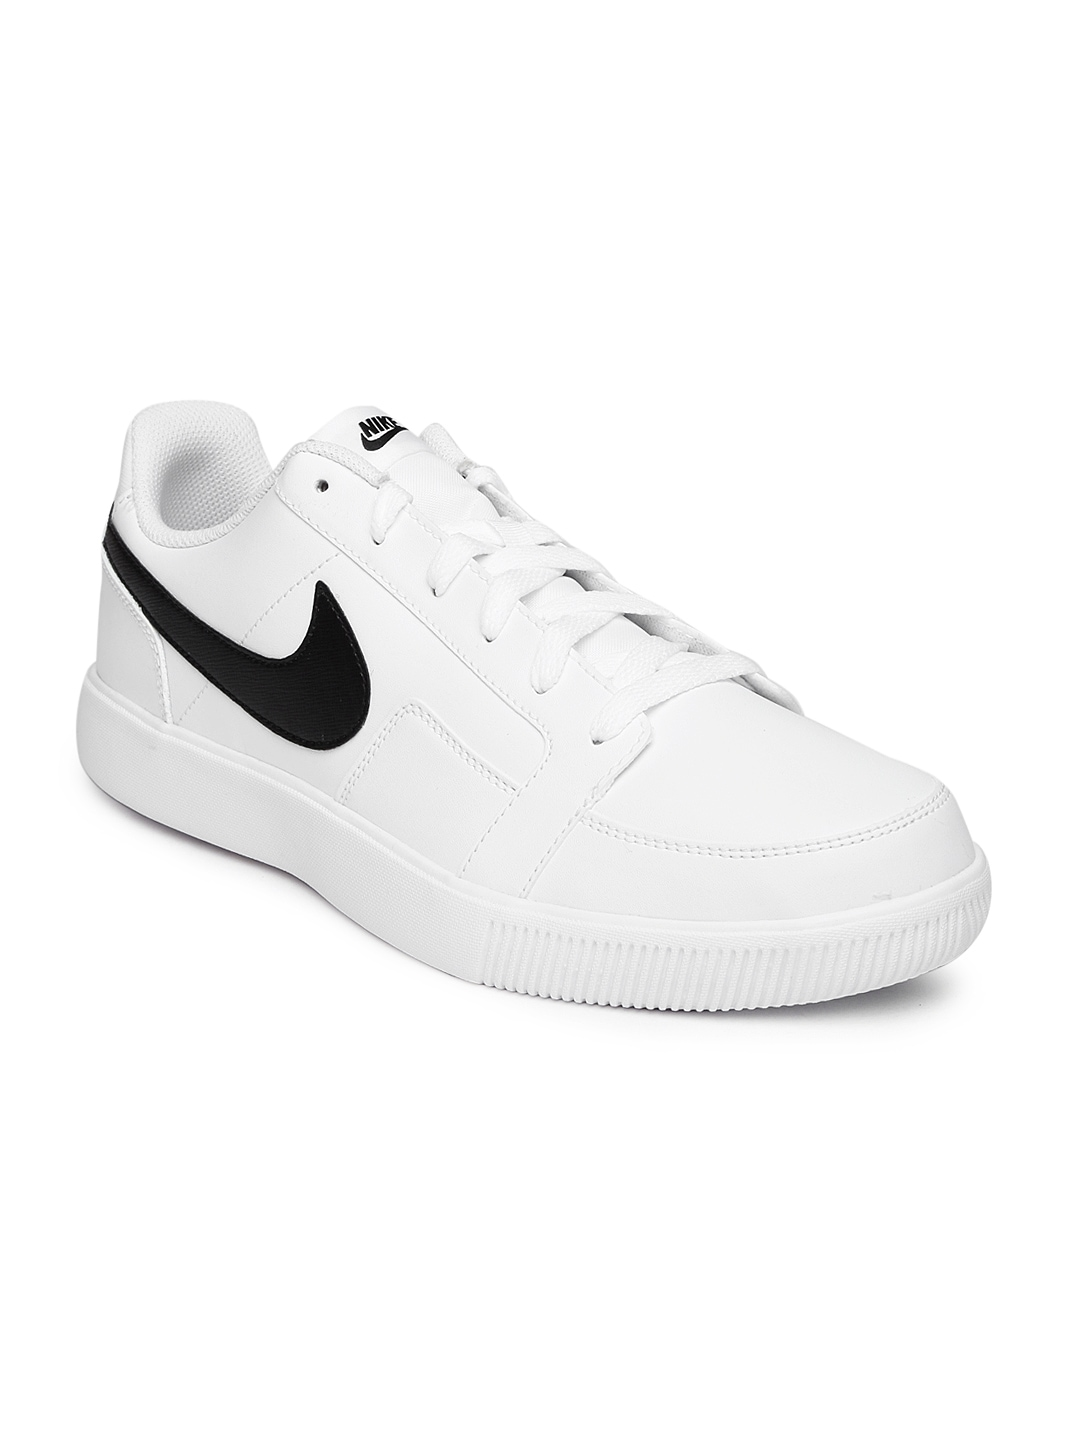 Awesome Browse A Wide Selection Of Mens Casual Shoes From Nike, Vans  Womens Nike Shox Turbo Follow This Search Nike Shox All White For Women Width B Medium Log In Email Address Nike Asserts That We Free Shipping Available On